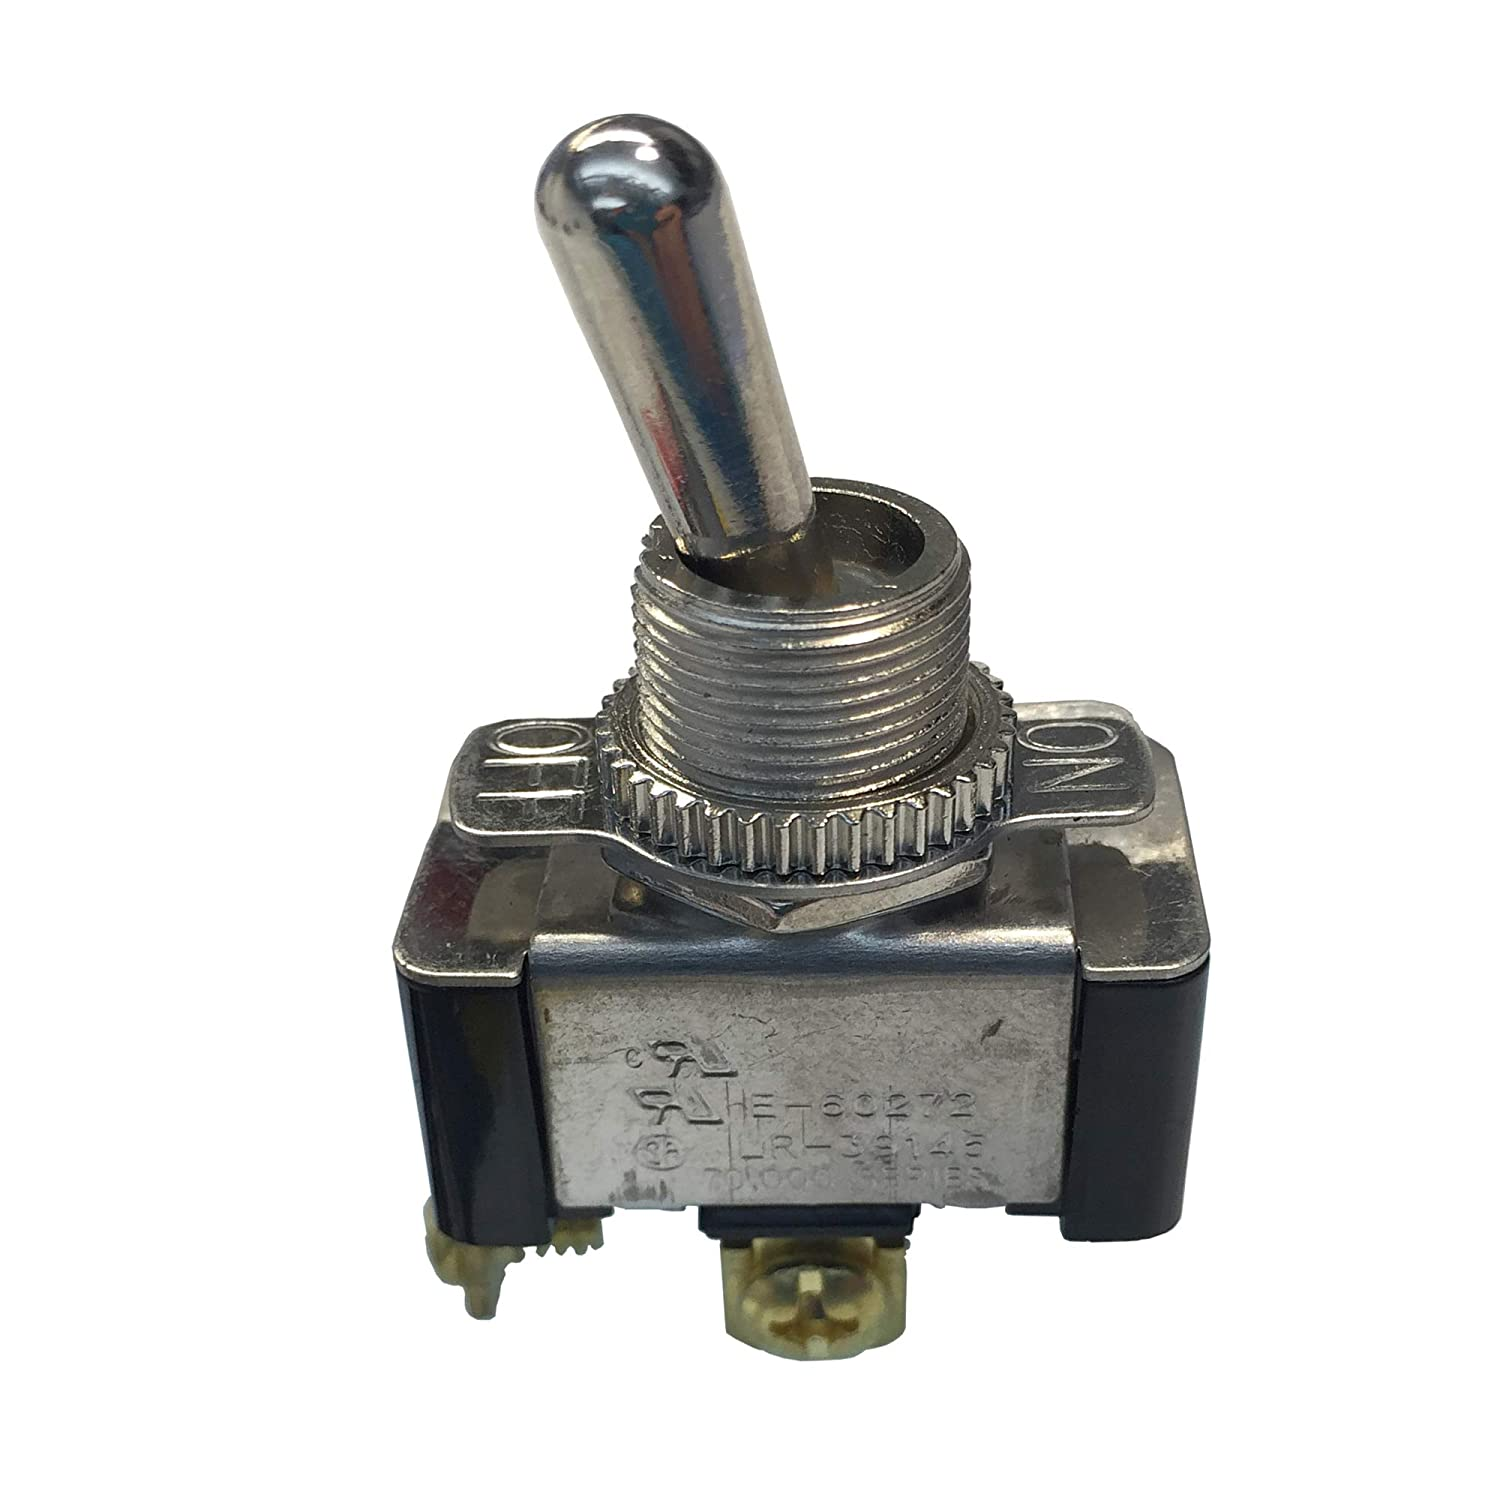 Gardner Bender Gsw 110 Electrical Toggle Switch Spst Dc Circuit Breaker Style On Off 20 A 125v Ac O Ring Screw Terminal Home Improvement